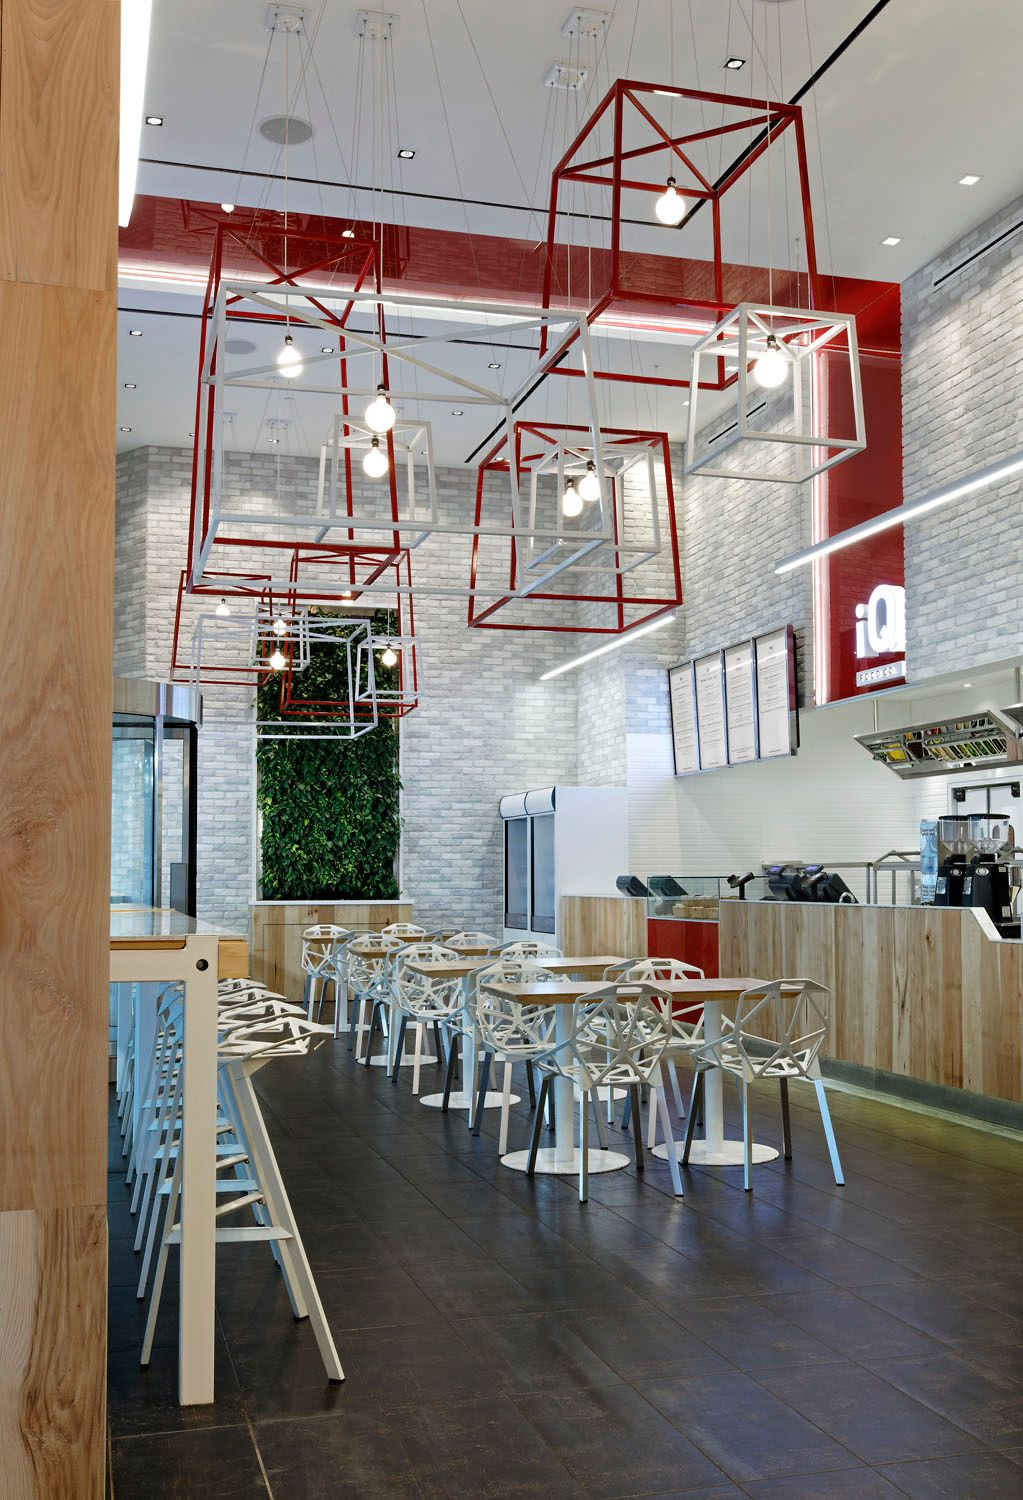 Mobilier Cafe Restaurant Iq Food Co Ii By Iv Design Design Bar Mobilier De Salon